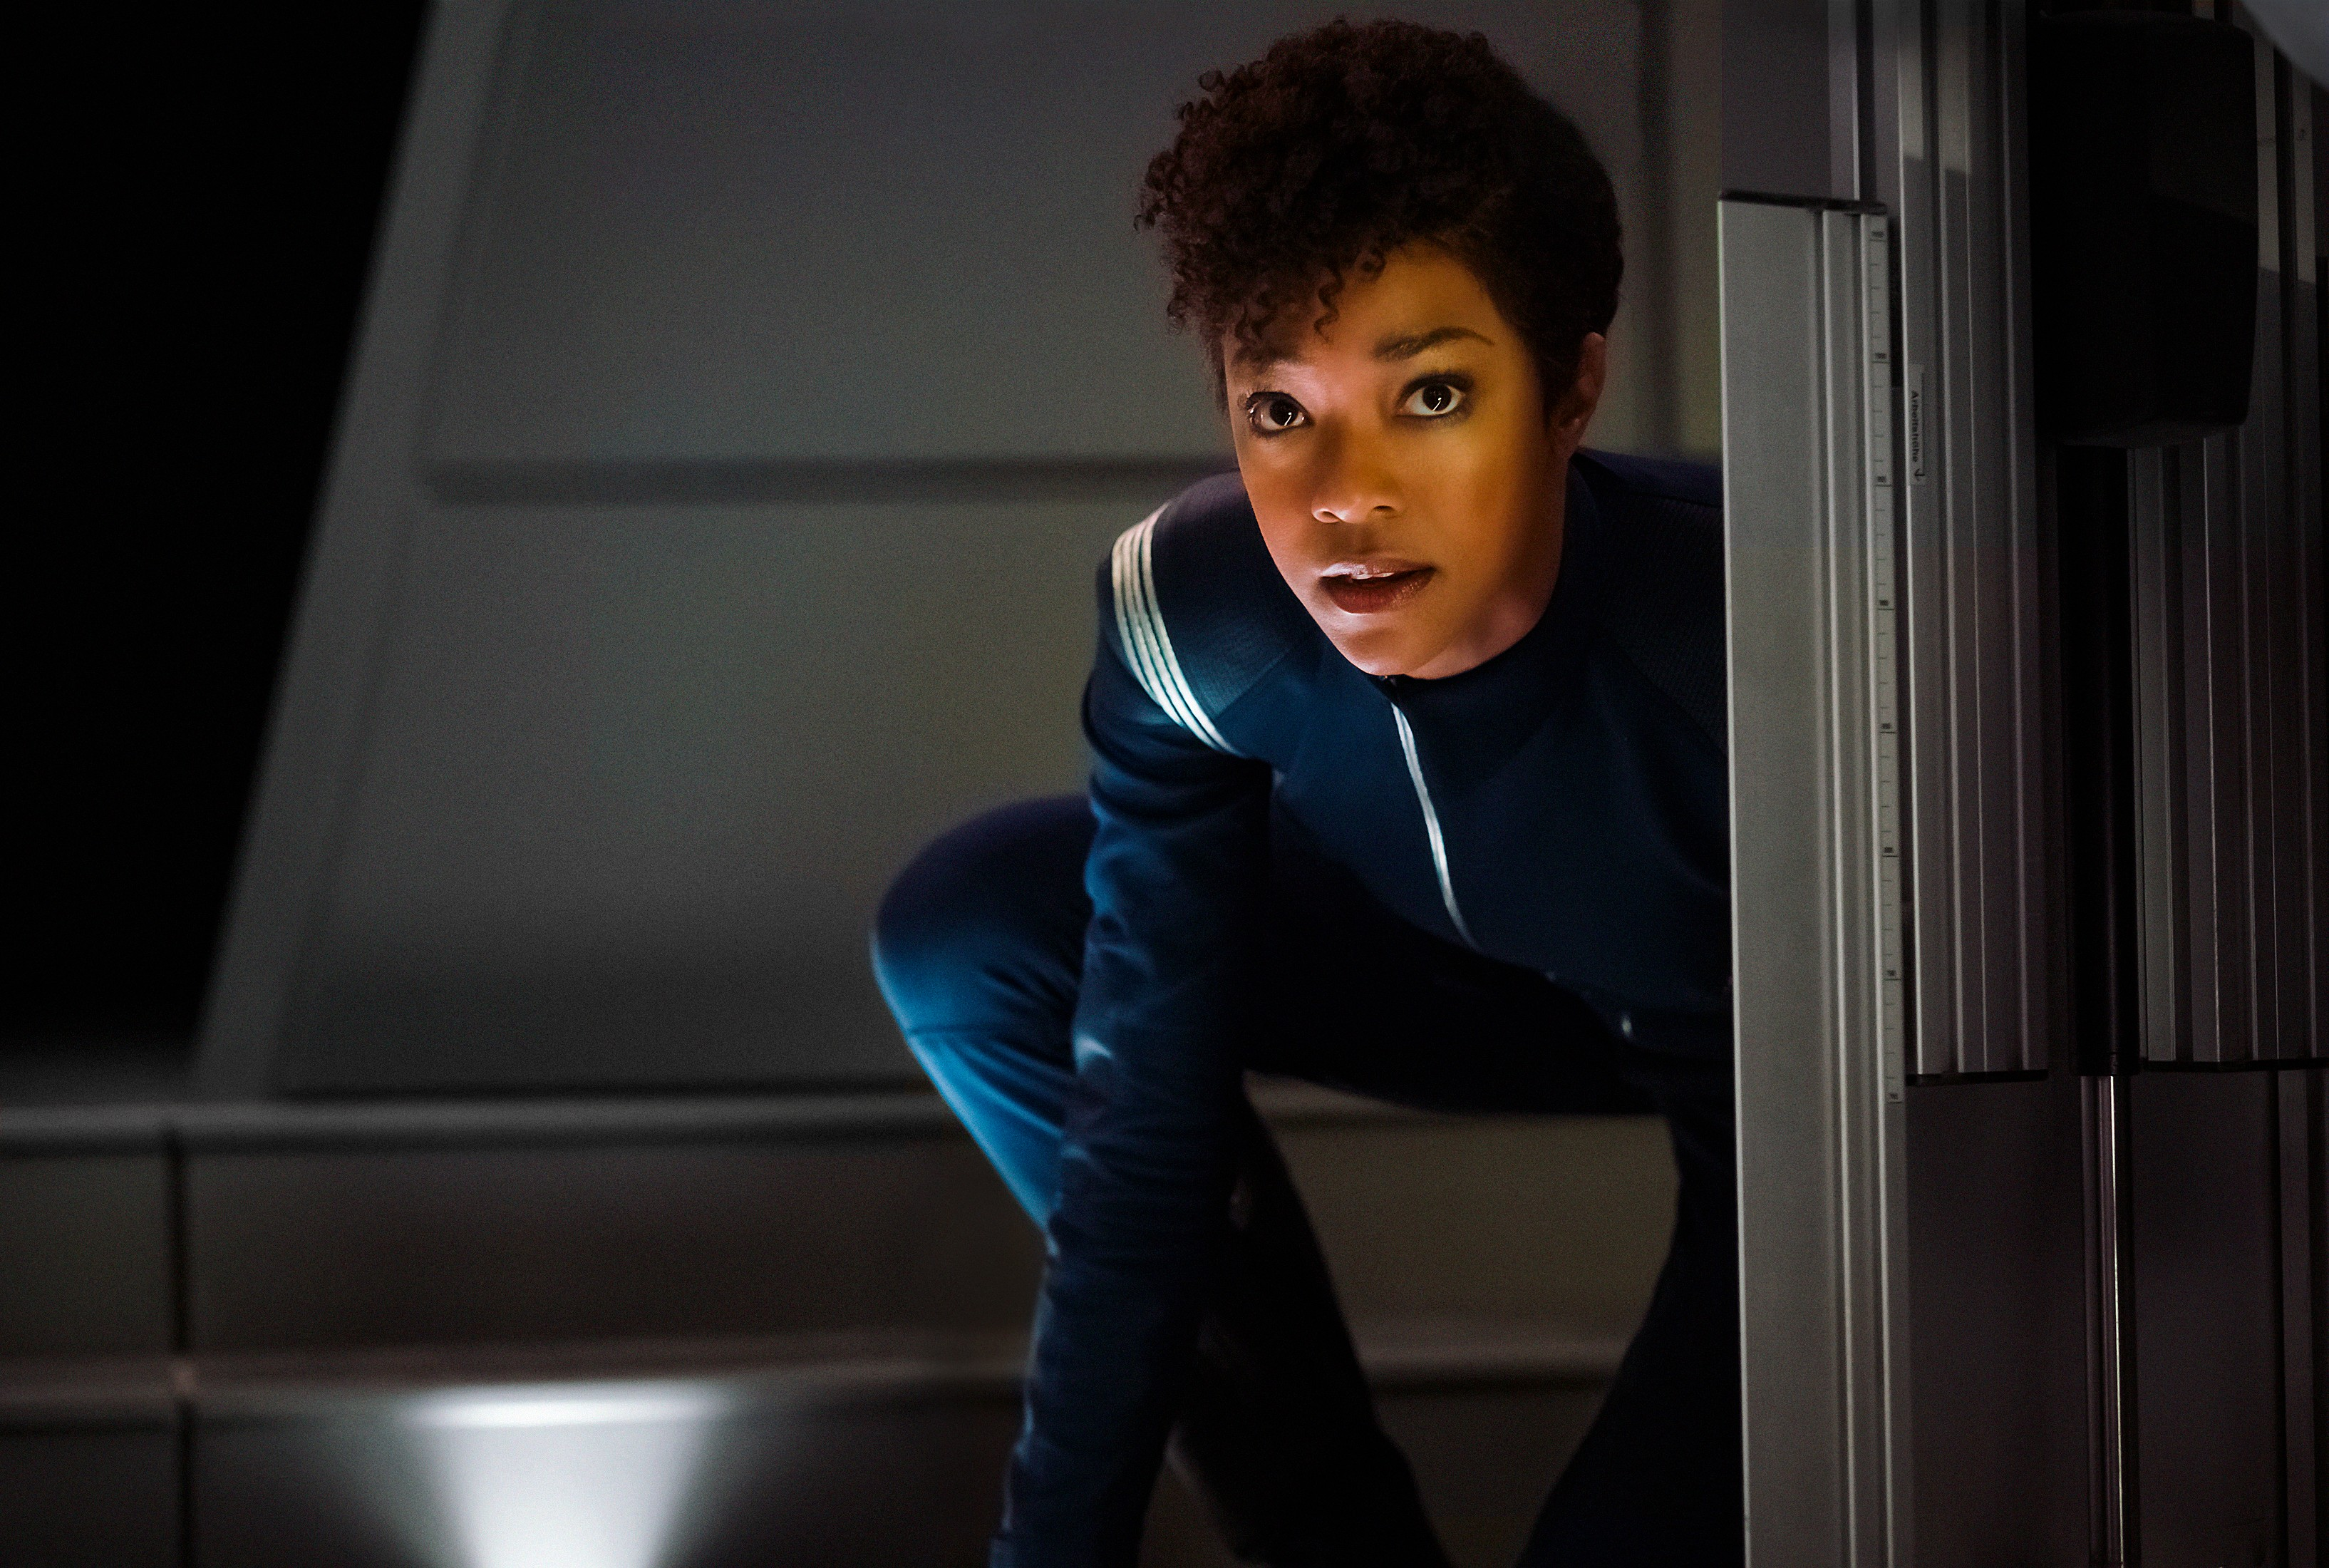 Pictured: Sonequa Martin-Green as First Officer Michael Burnham. STAR TREK: DISCOVERY coming to CBS All Access.  Photo Cr: Jan Thijs  © 2017 CBS Interactive. All Rights Reserved.